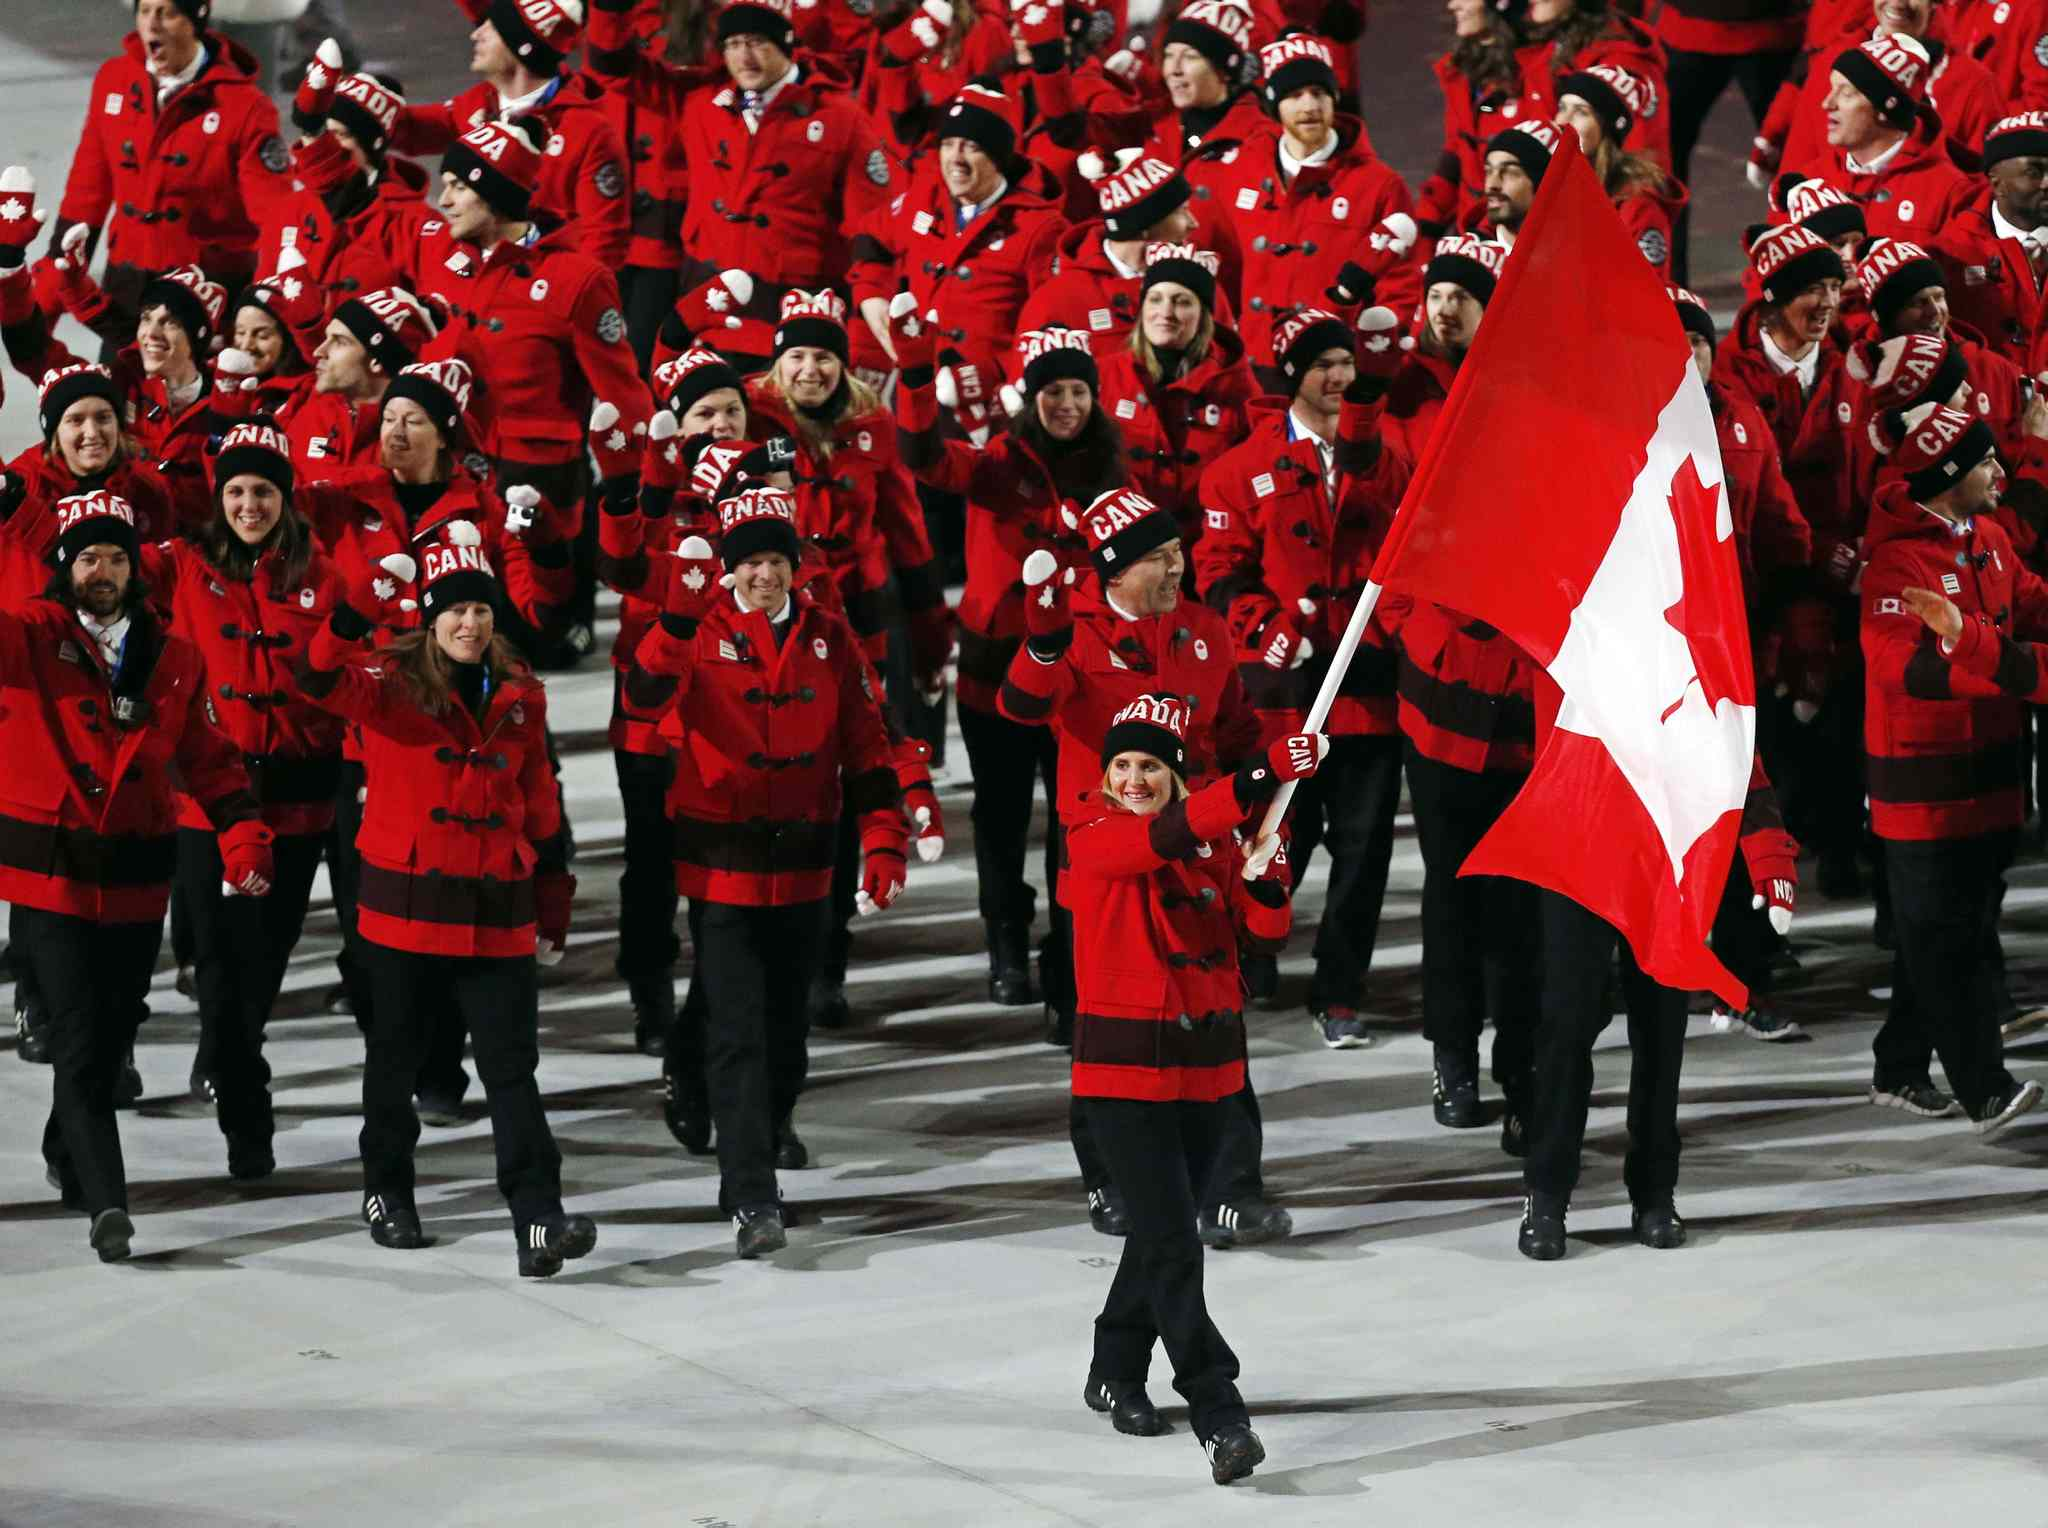 Hayley Wickenheiser of Canada carries her country flag as they arrive during the opening ceremony of the 2014 Winter Olympics in Sochi, Russia, Friday, Feb. 7, 2014. (AP Photo/Petr David Josek)